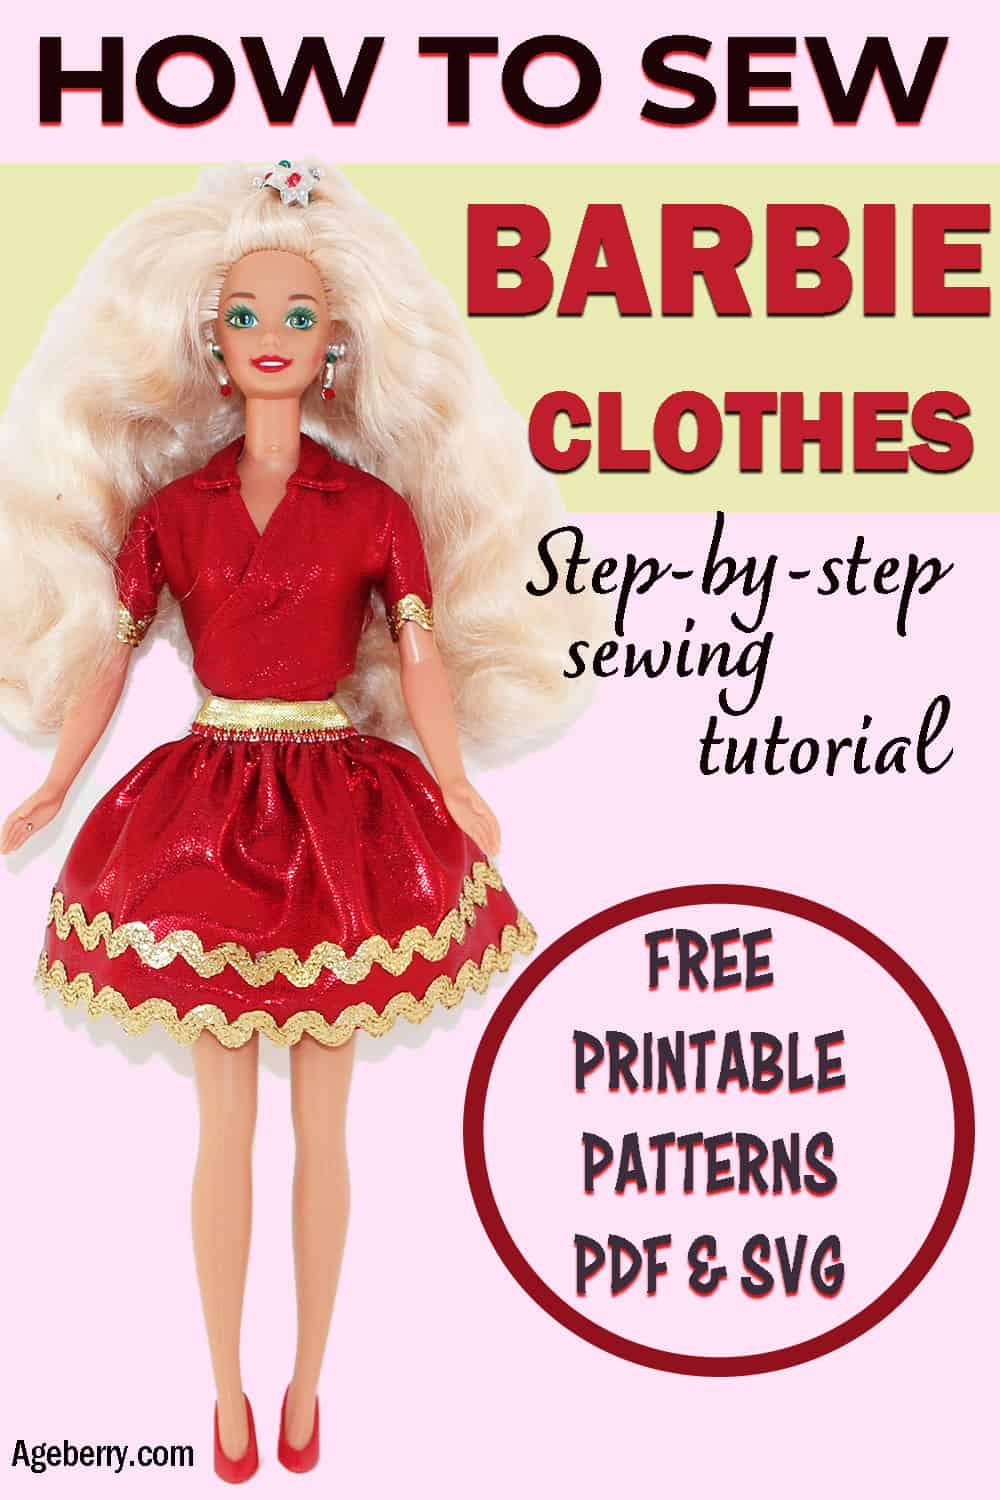 DIY Barbie clothes patterns free printable PDF and SVG